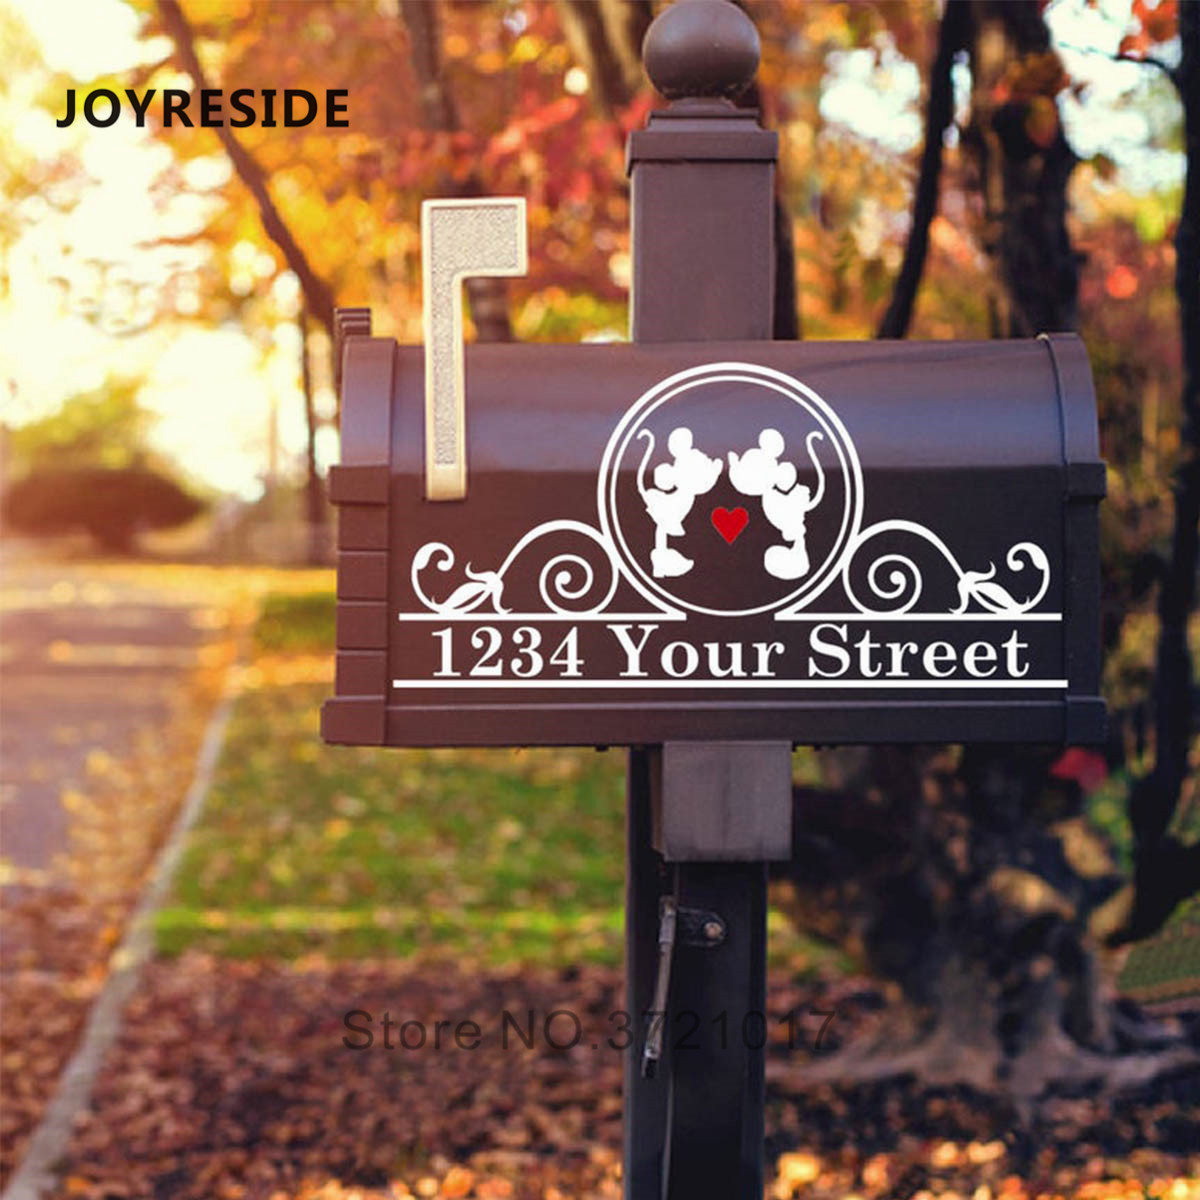 Mailbox Decoration Sticker Custom Personalized Address Mail Boxes Art Decor Design Decals Stickers Vintl Removable Decals M494 Wall Stickers Aliexpress